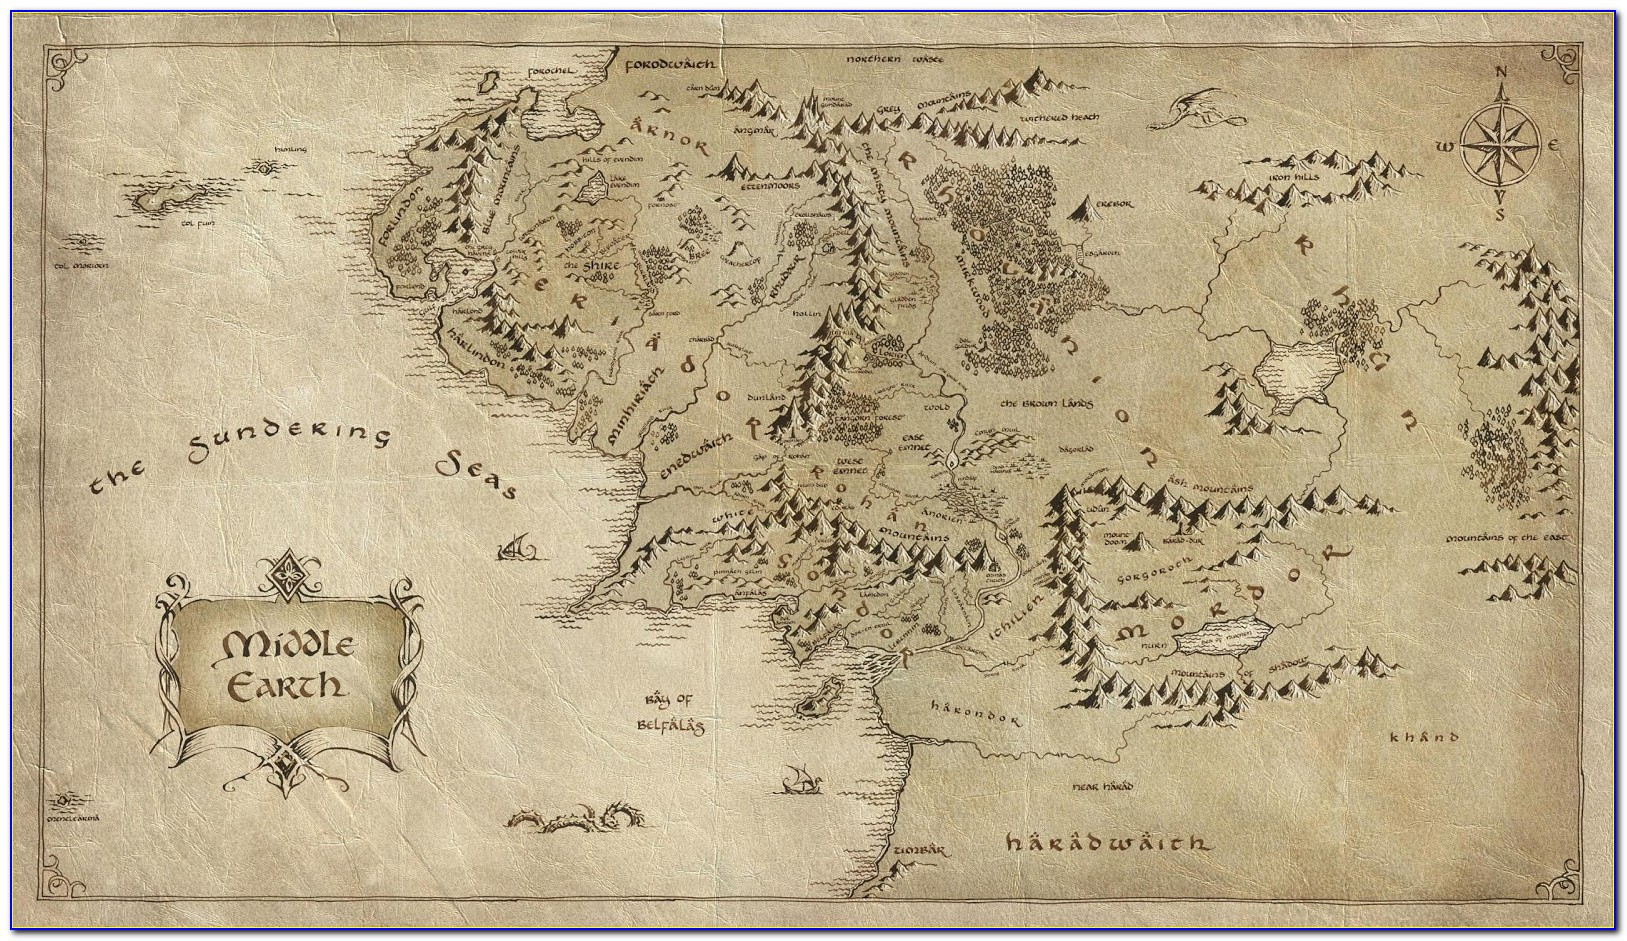 Hobbit Middle Earth Map